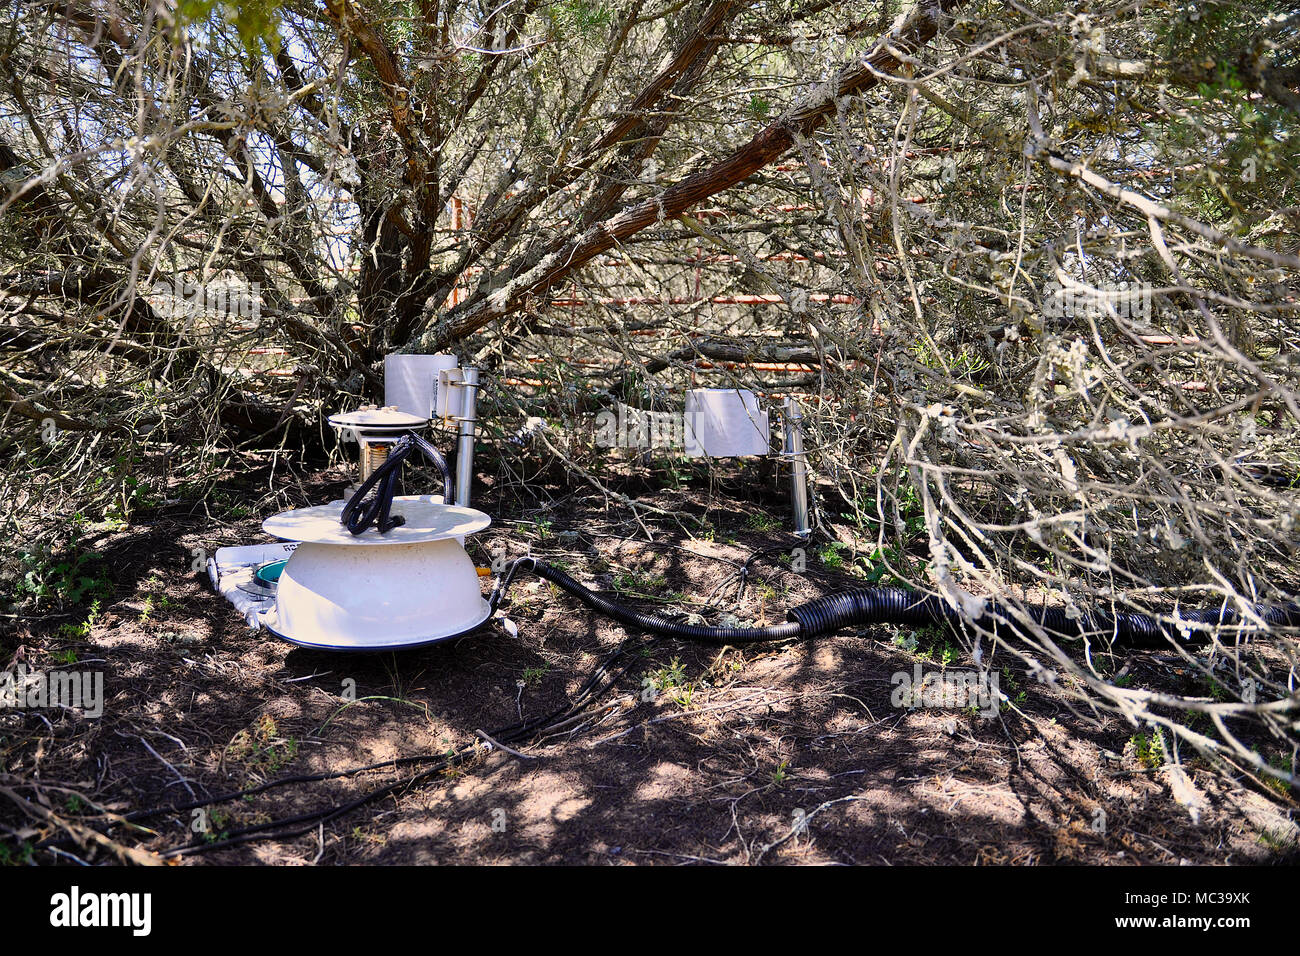 LI-COR Soil CO2 Flux System installed under a Junipers turbinata in long-term biology investigations in Doñana National Park (Huelva,Andalusia, Spain) - Stock Image